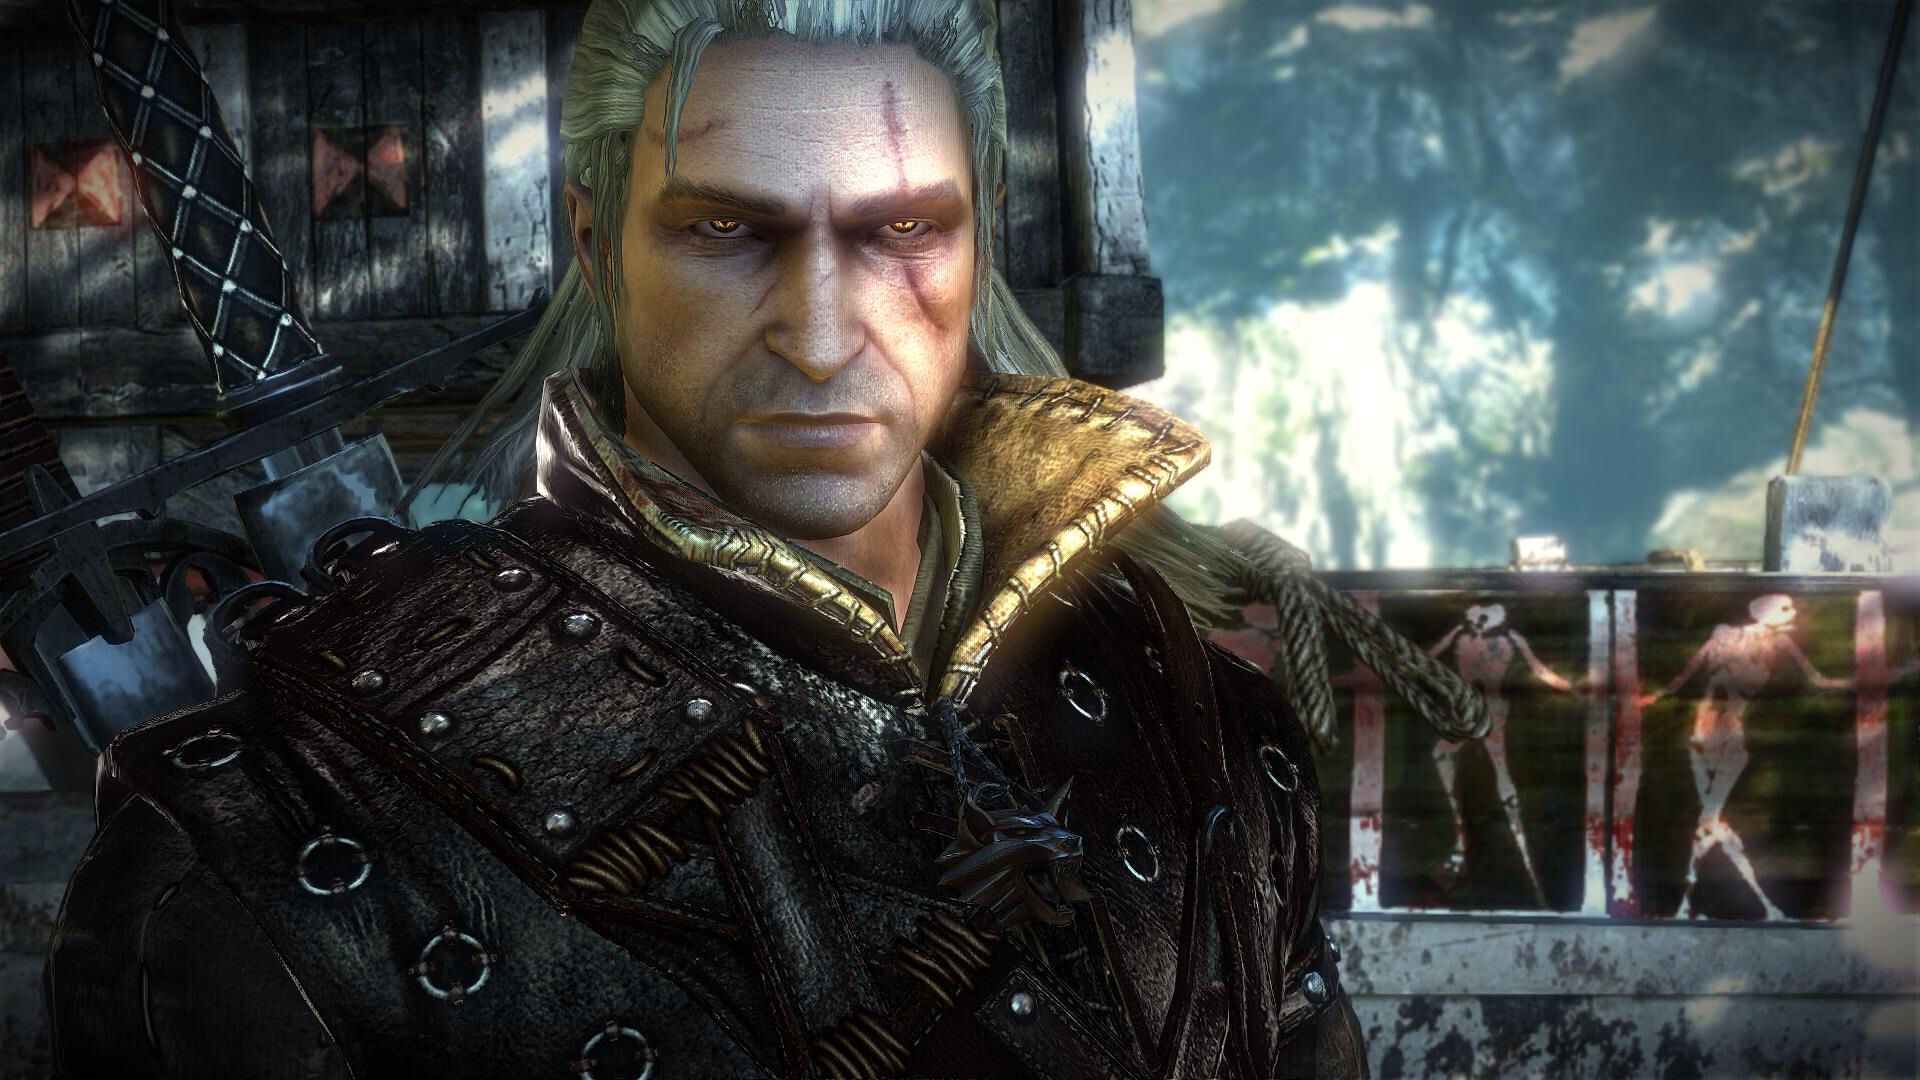 The Witcher 2 Geralt I Love That Look In His Eyes